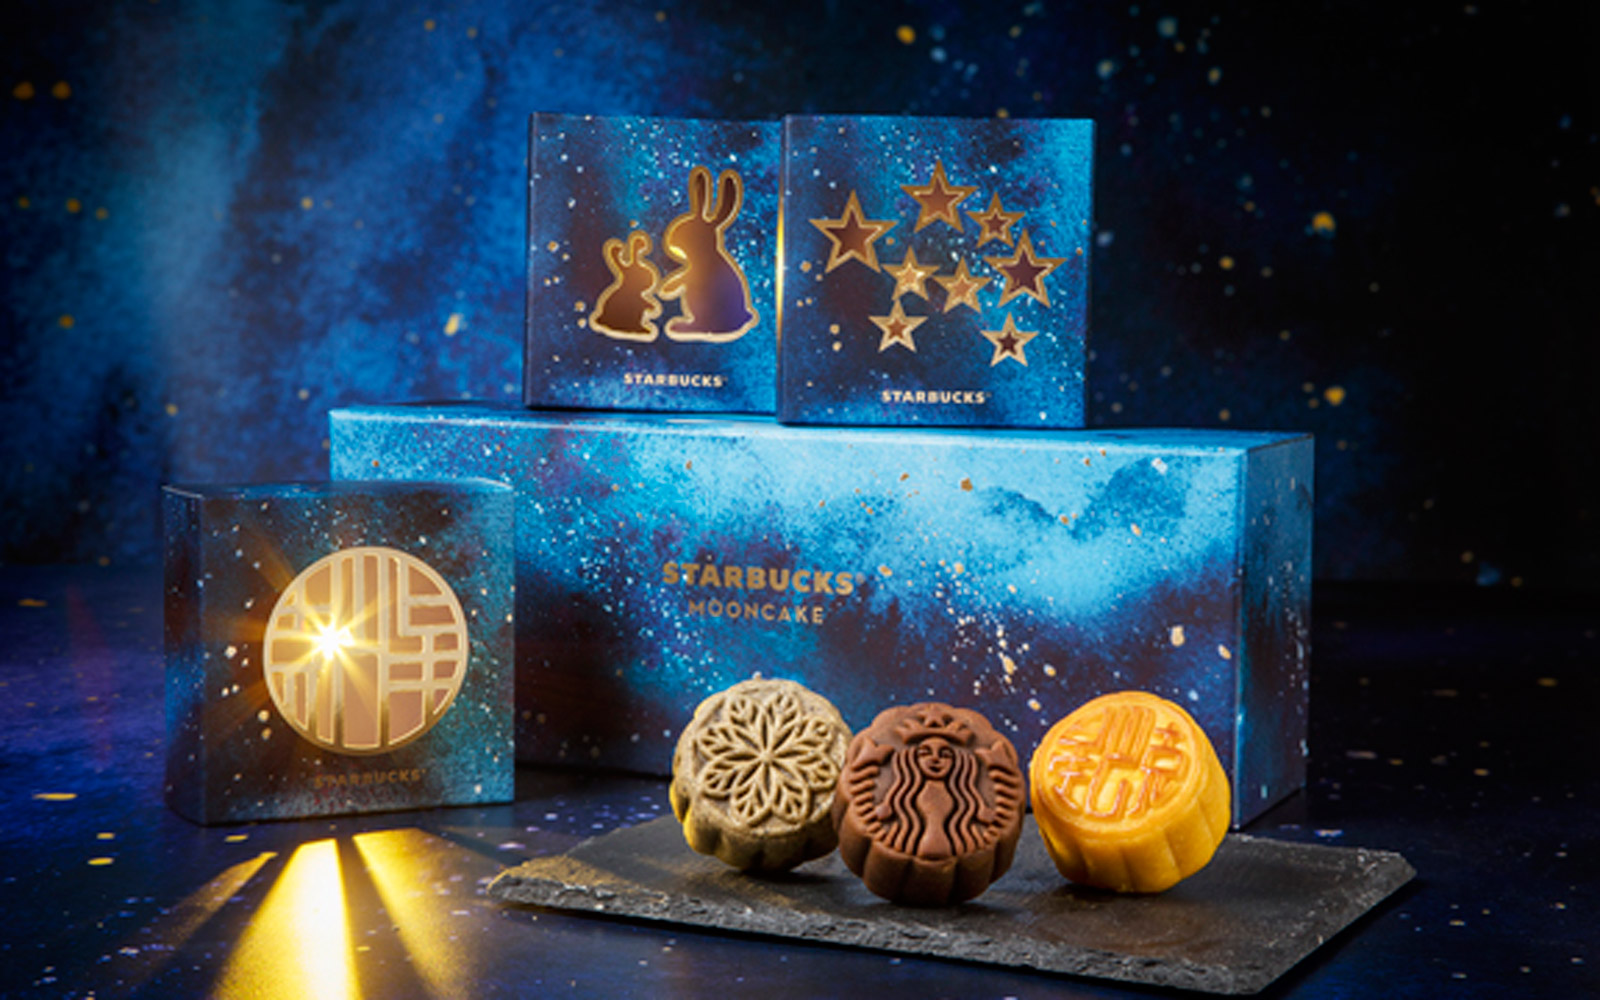 Starbucks' Mooncakes Come in Glowing Lantern Boxes